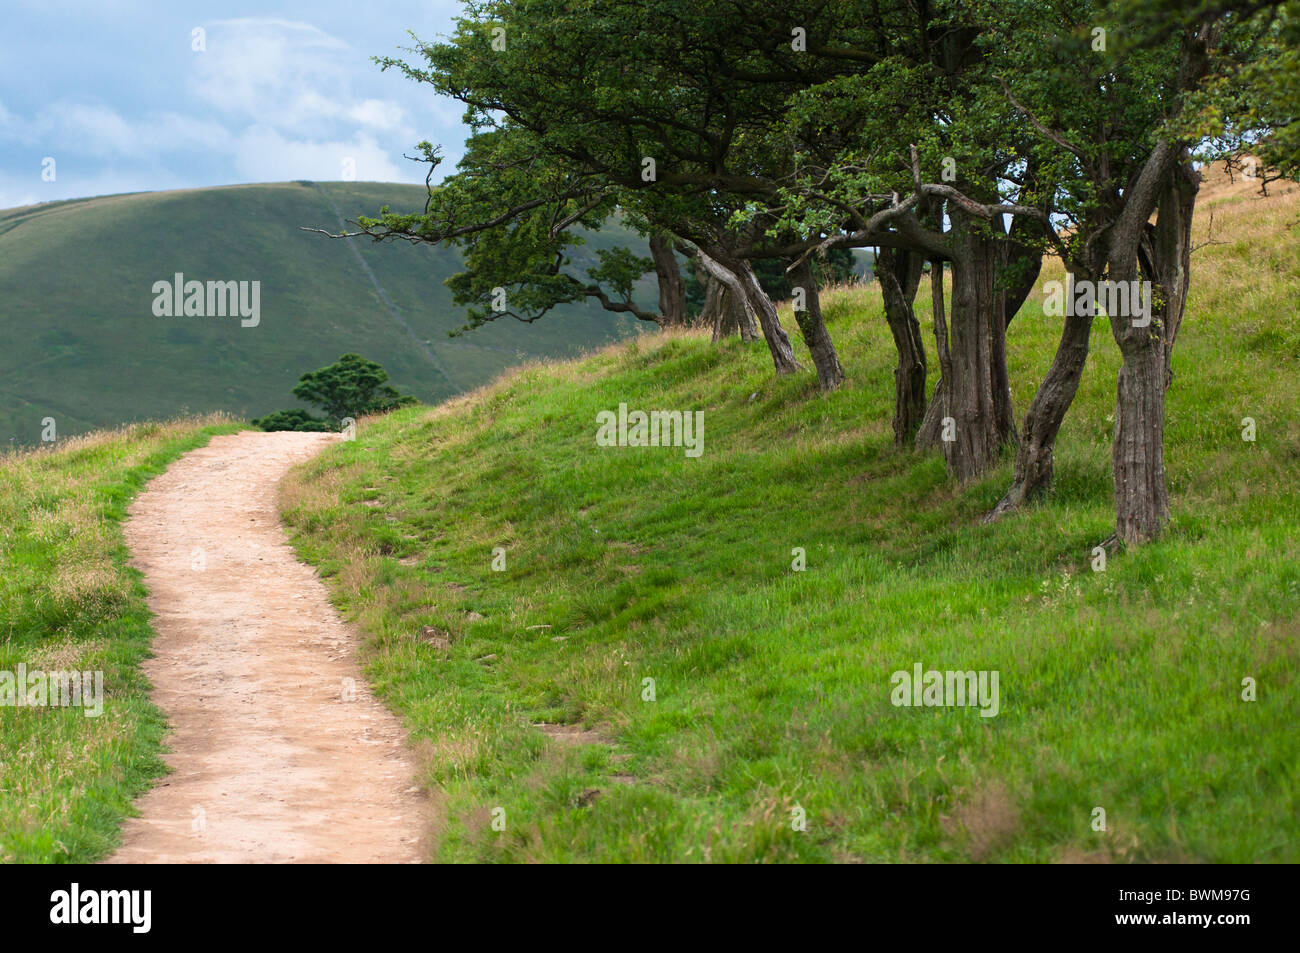 The Pennine way near the village of Edale, Derbyshire Dales, UK - Stock Image